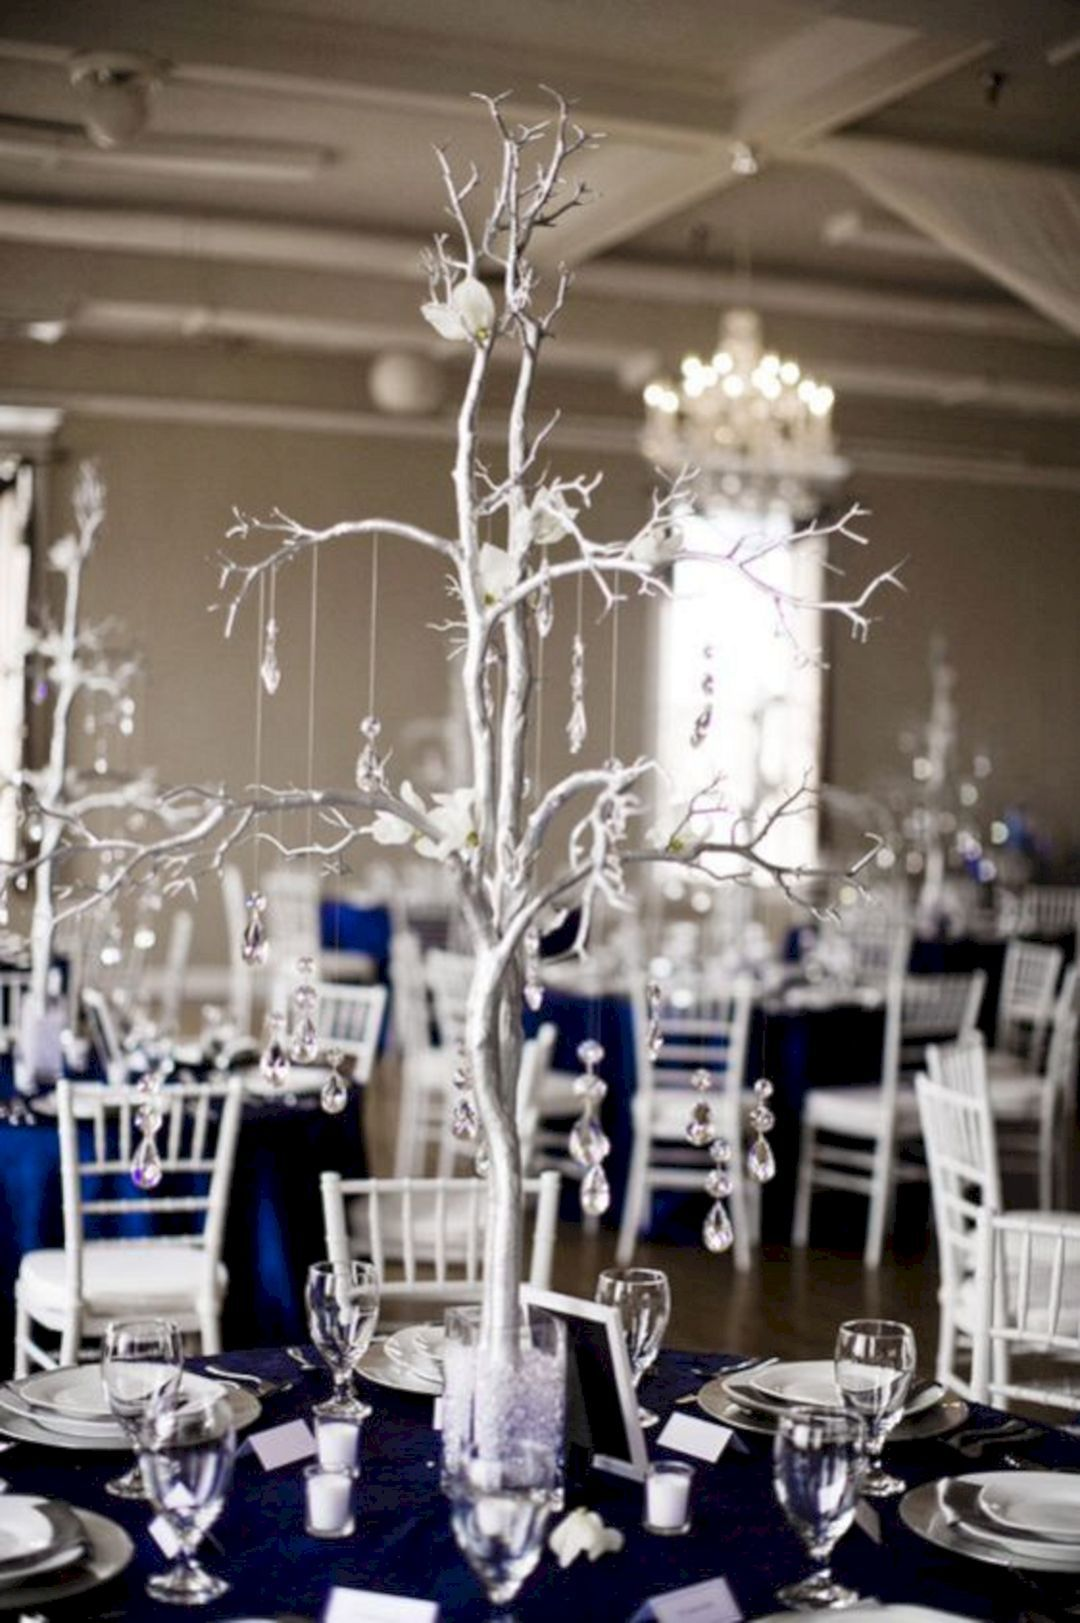 25 elegant blue and silver wedding decorations ideas for wedding 25 elegant blue and silver wedding decorations ideas for wedding decor perfectly junglespirit Image collections